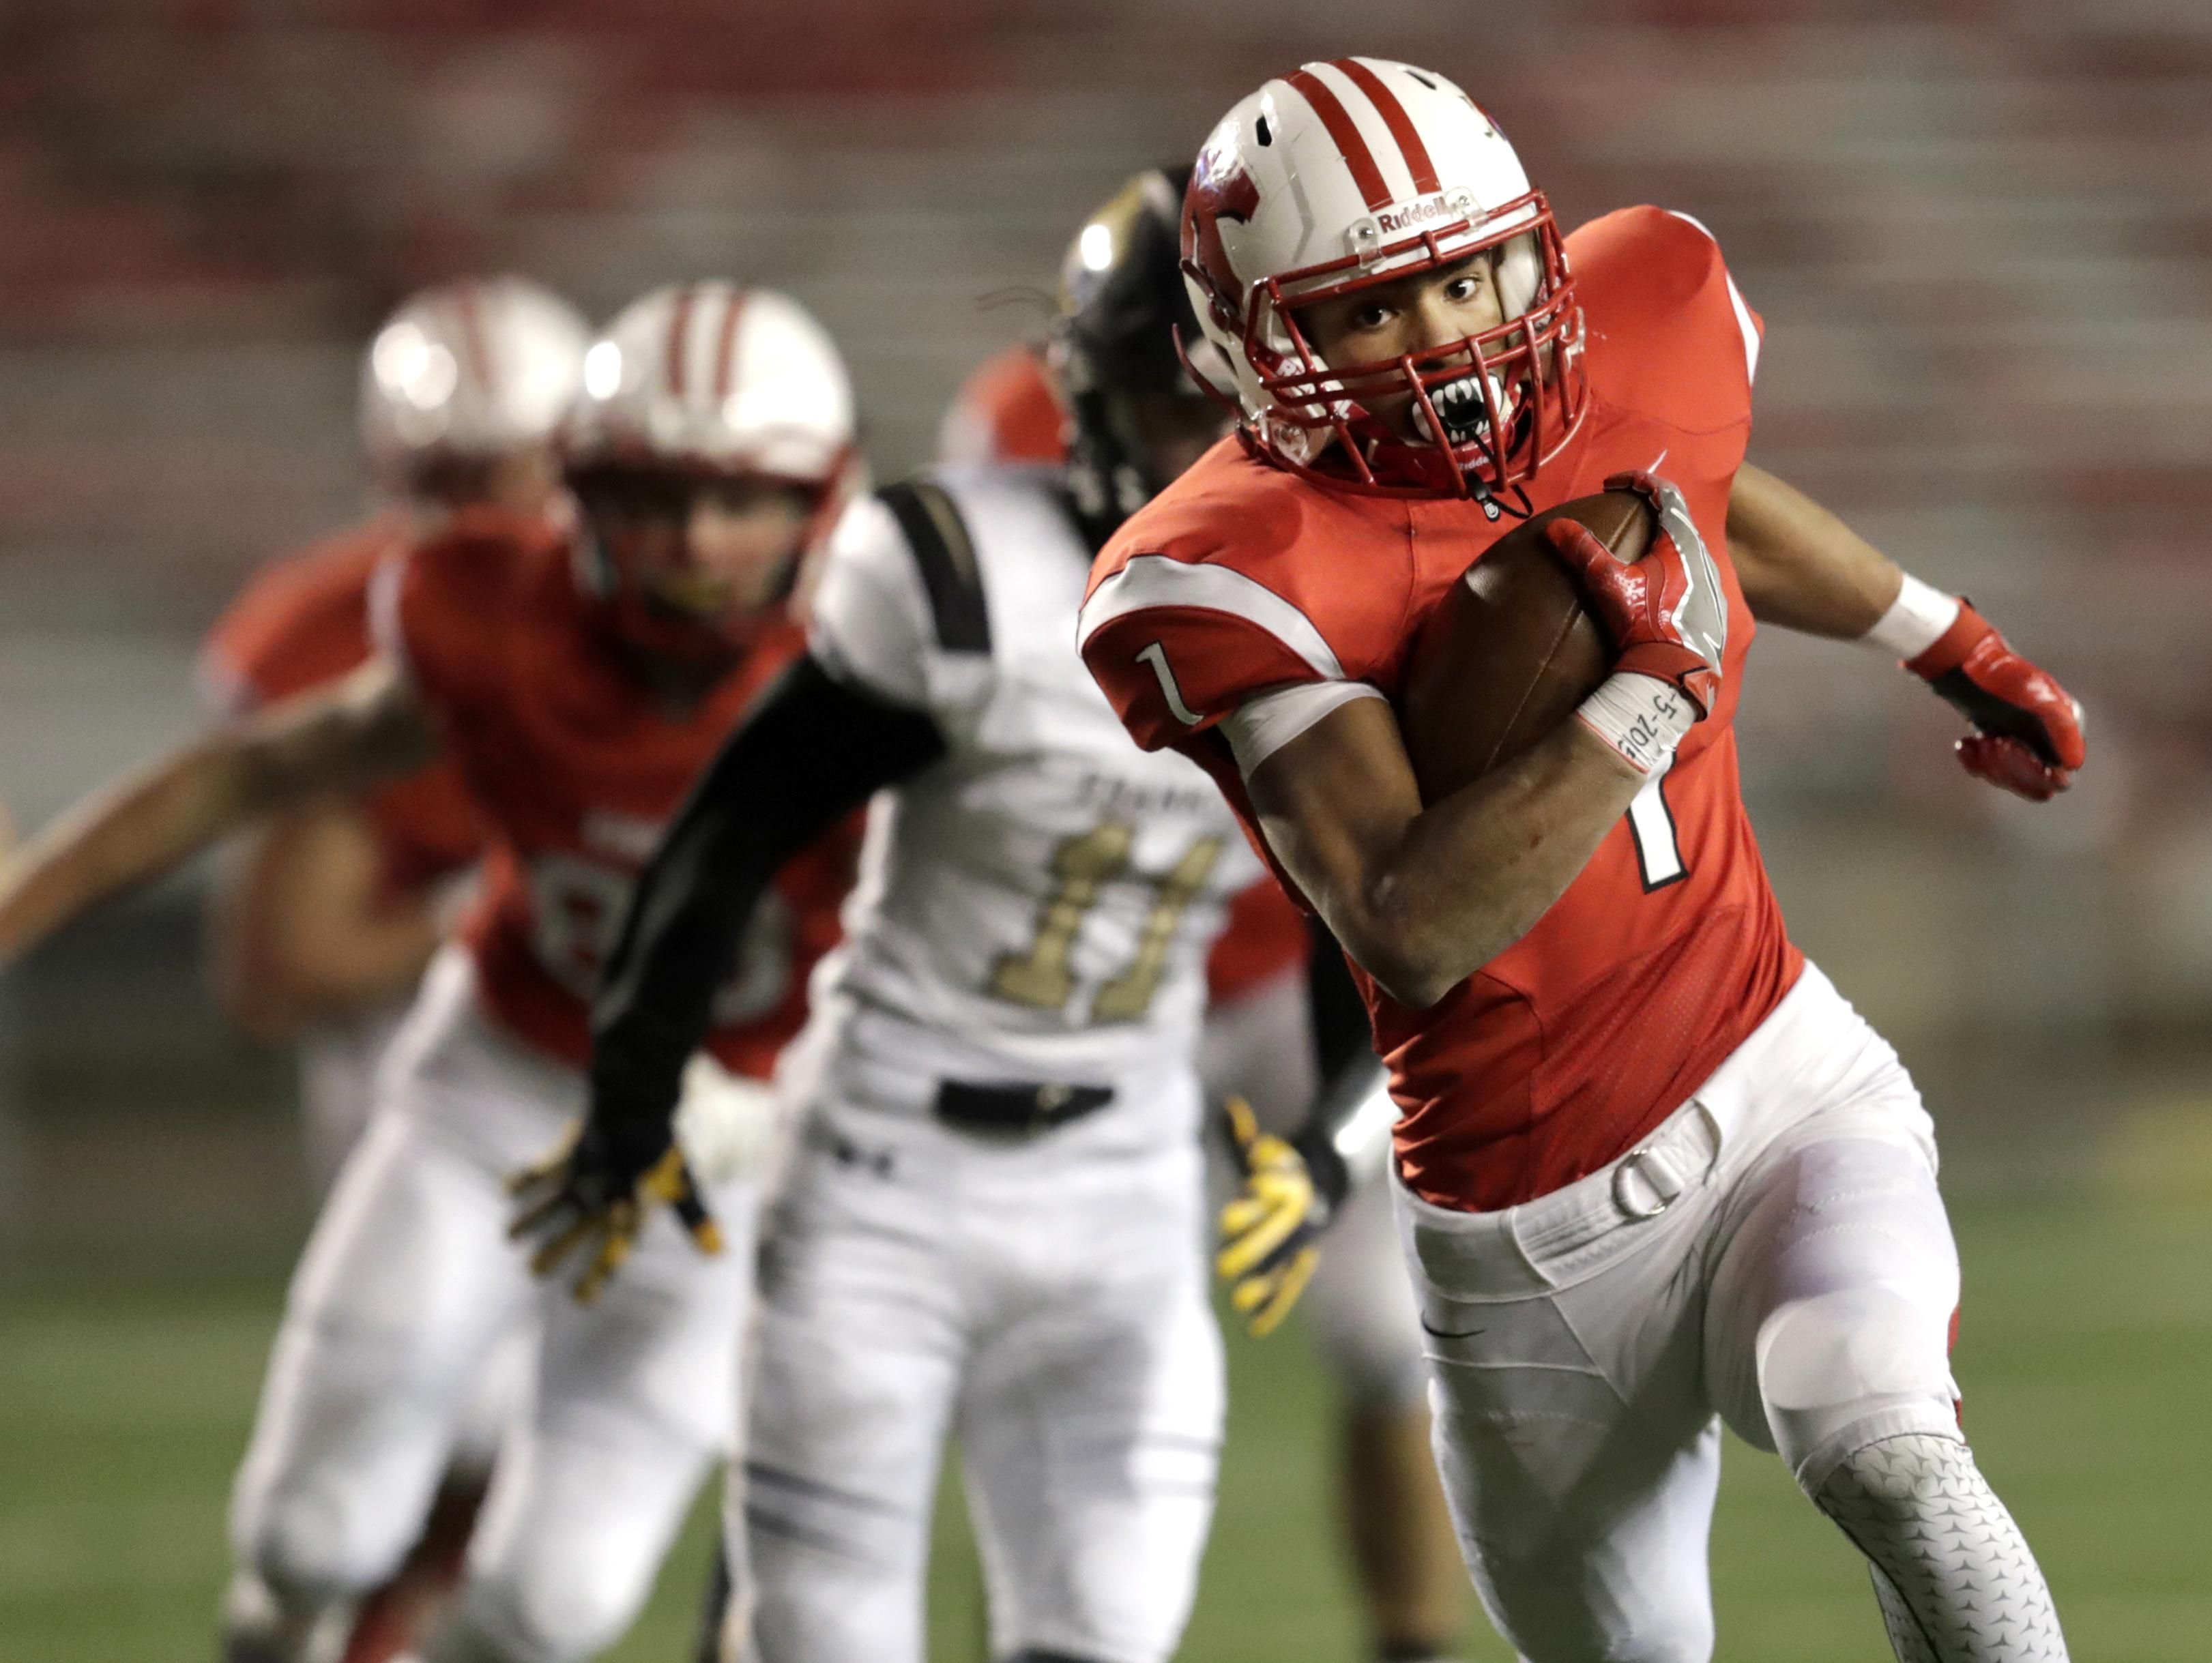 Running back D.J. Stewart and the Kimberly Papermakers won their fourth consecutive state football championship in November and have won 56 consecutive games.